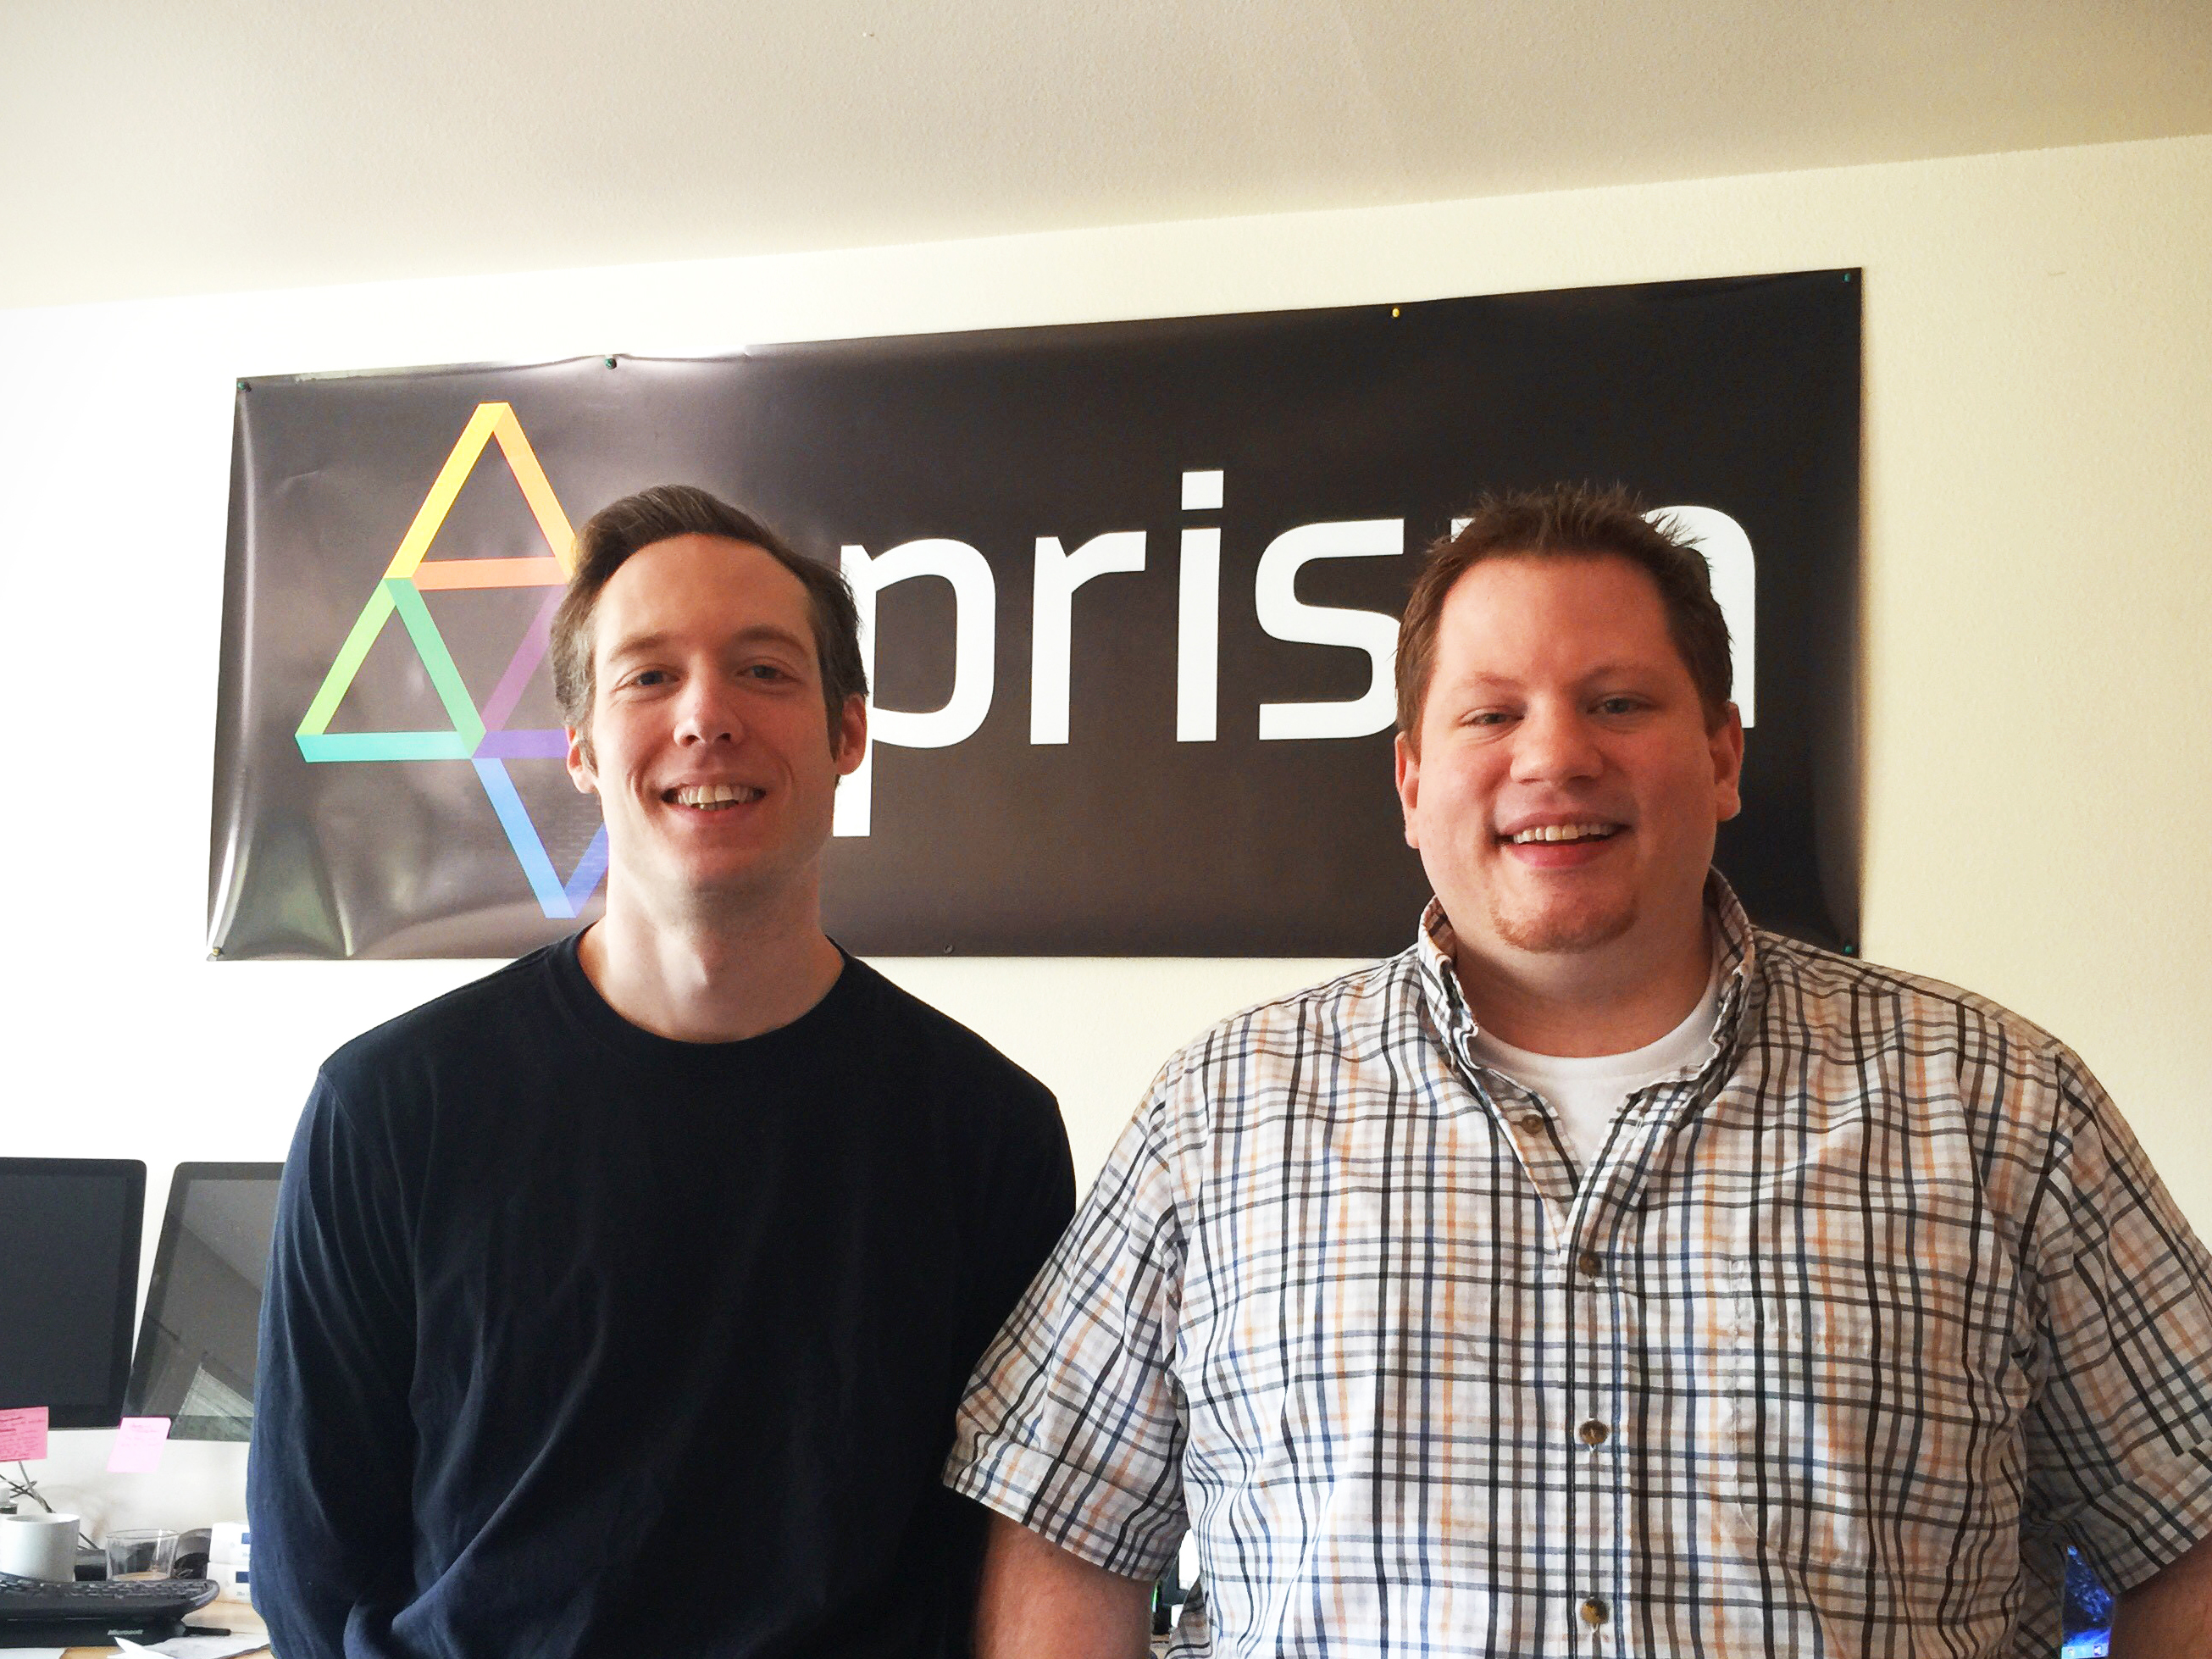 Tyler and Steve, co-founders of the Prism bill paying app